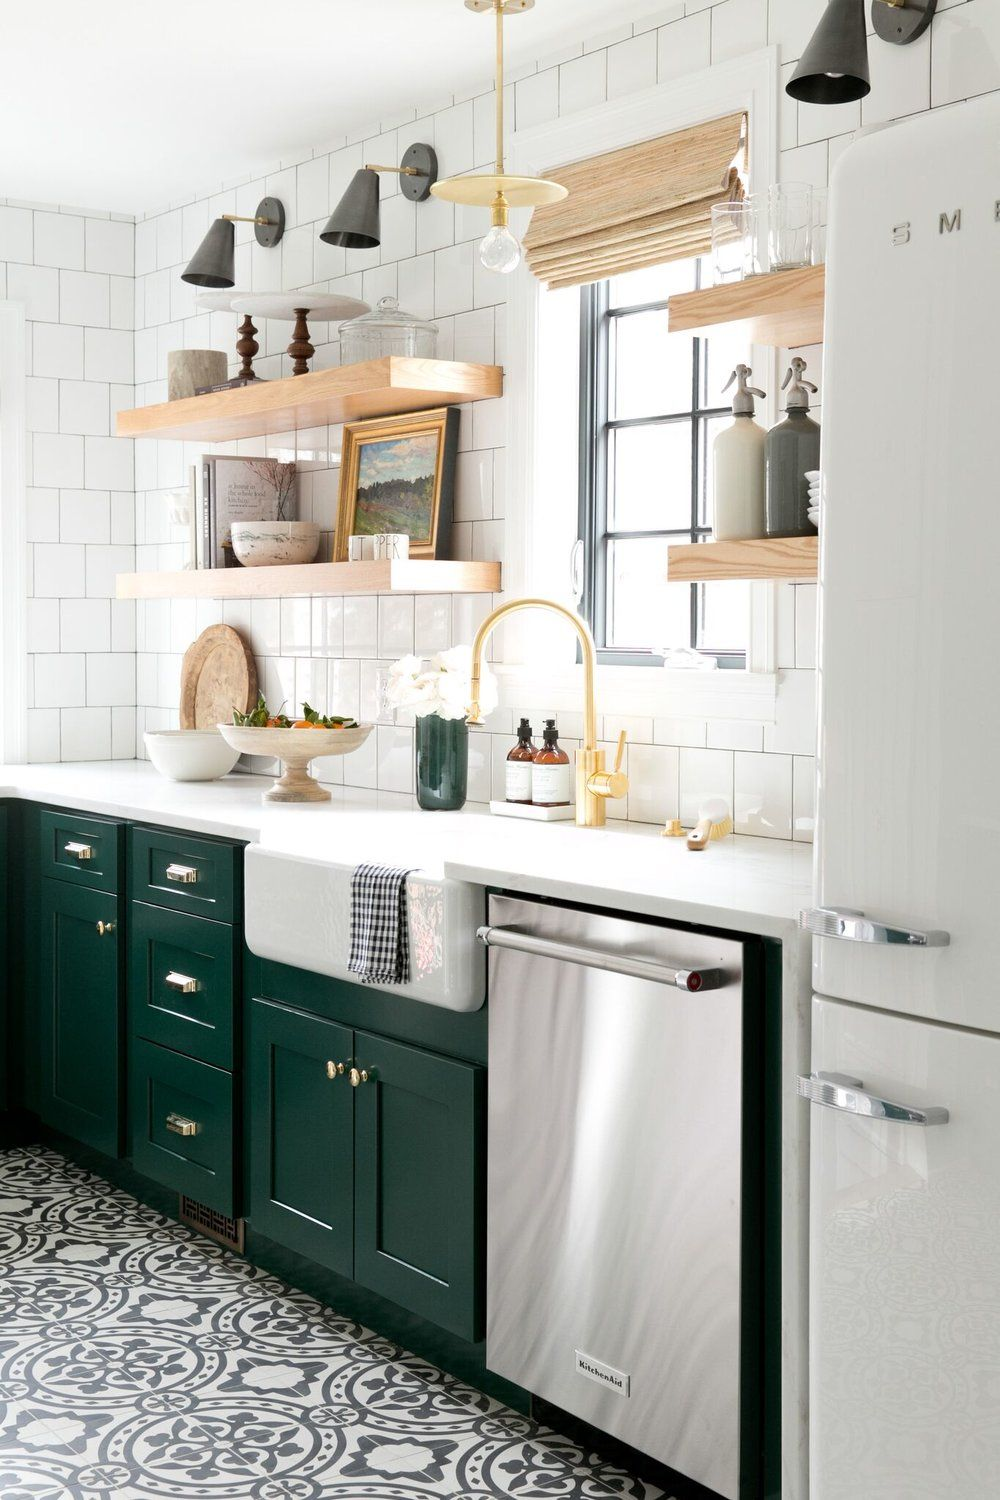 Denver Tudor Reveal | Pinterest | Open shelving, Vintage kitchen and ...